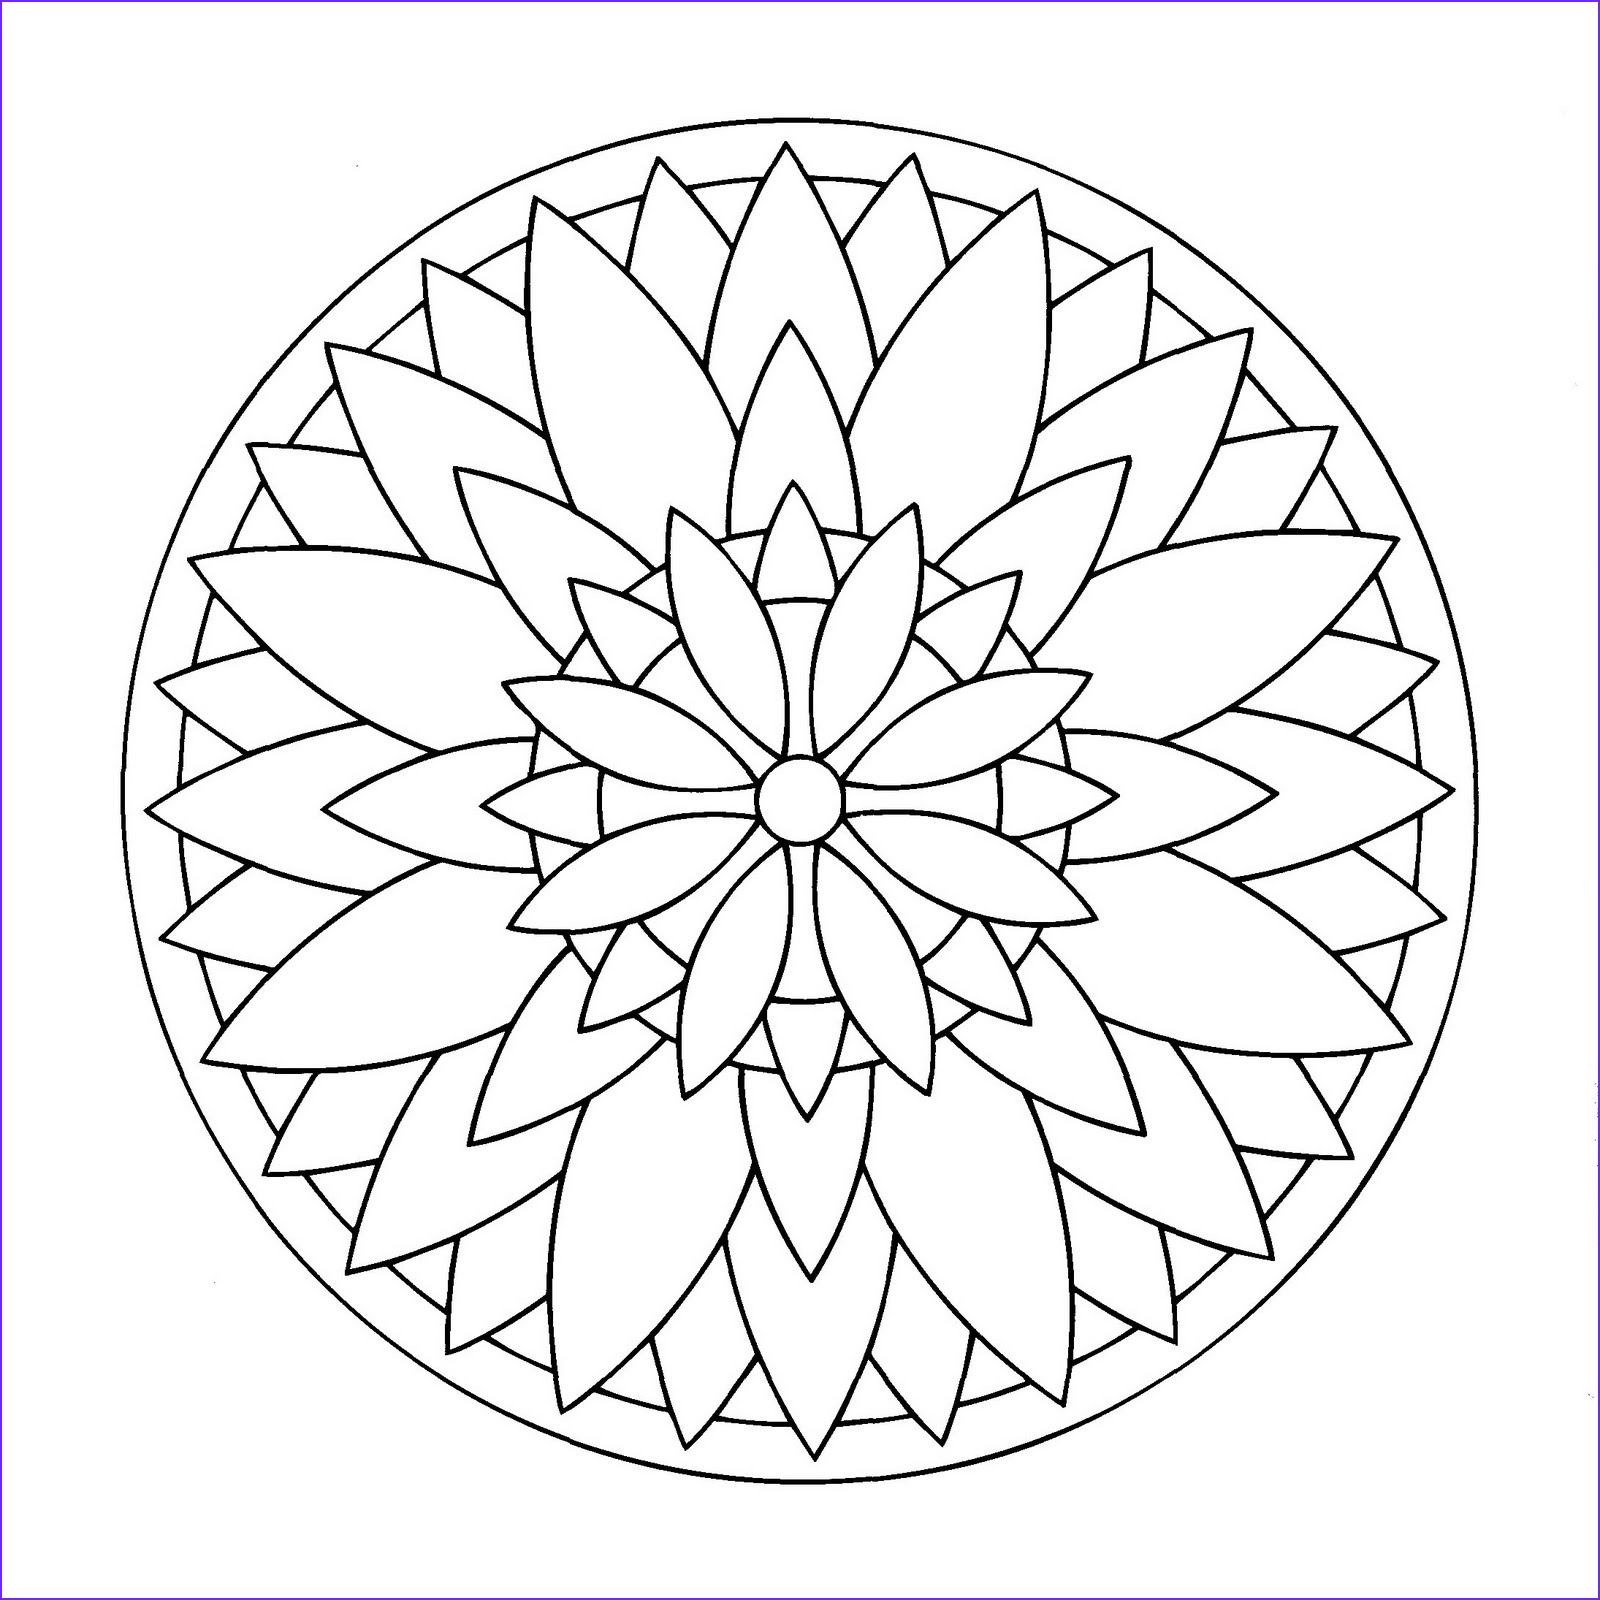 Simple Mandala Coloring Pages Awesome Stock Simple Mandala 3 M&alas Coloring Pages for Kids to Print